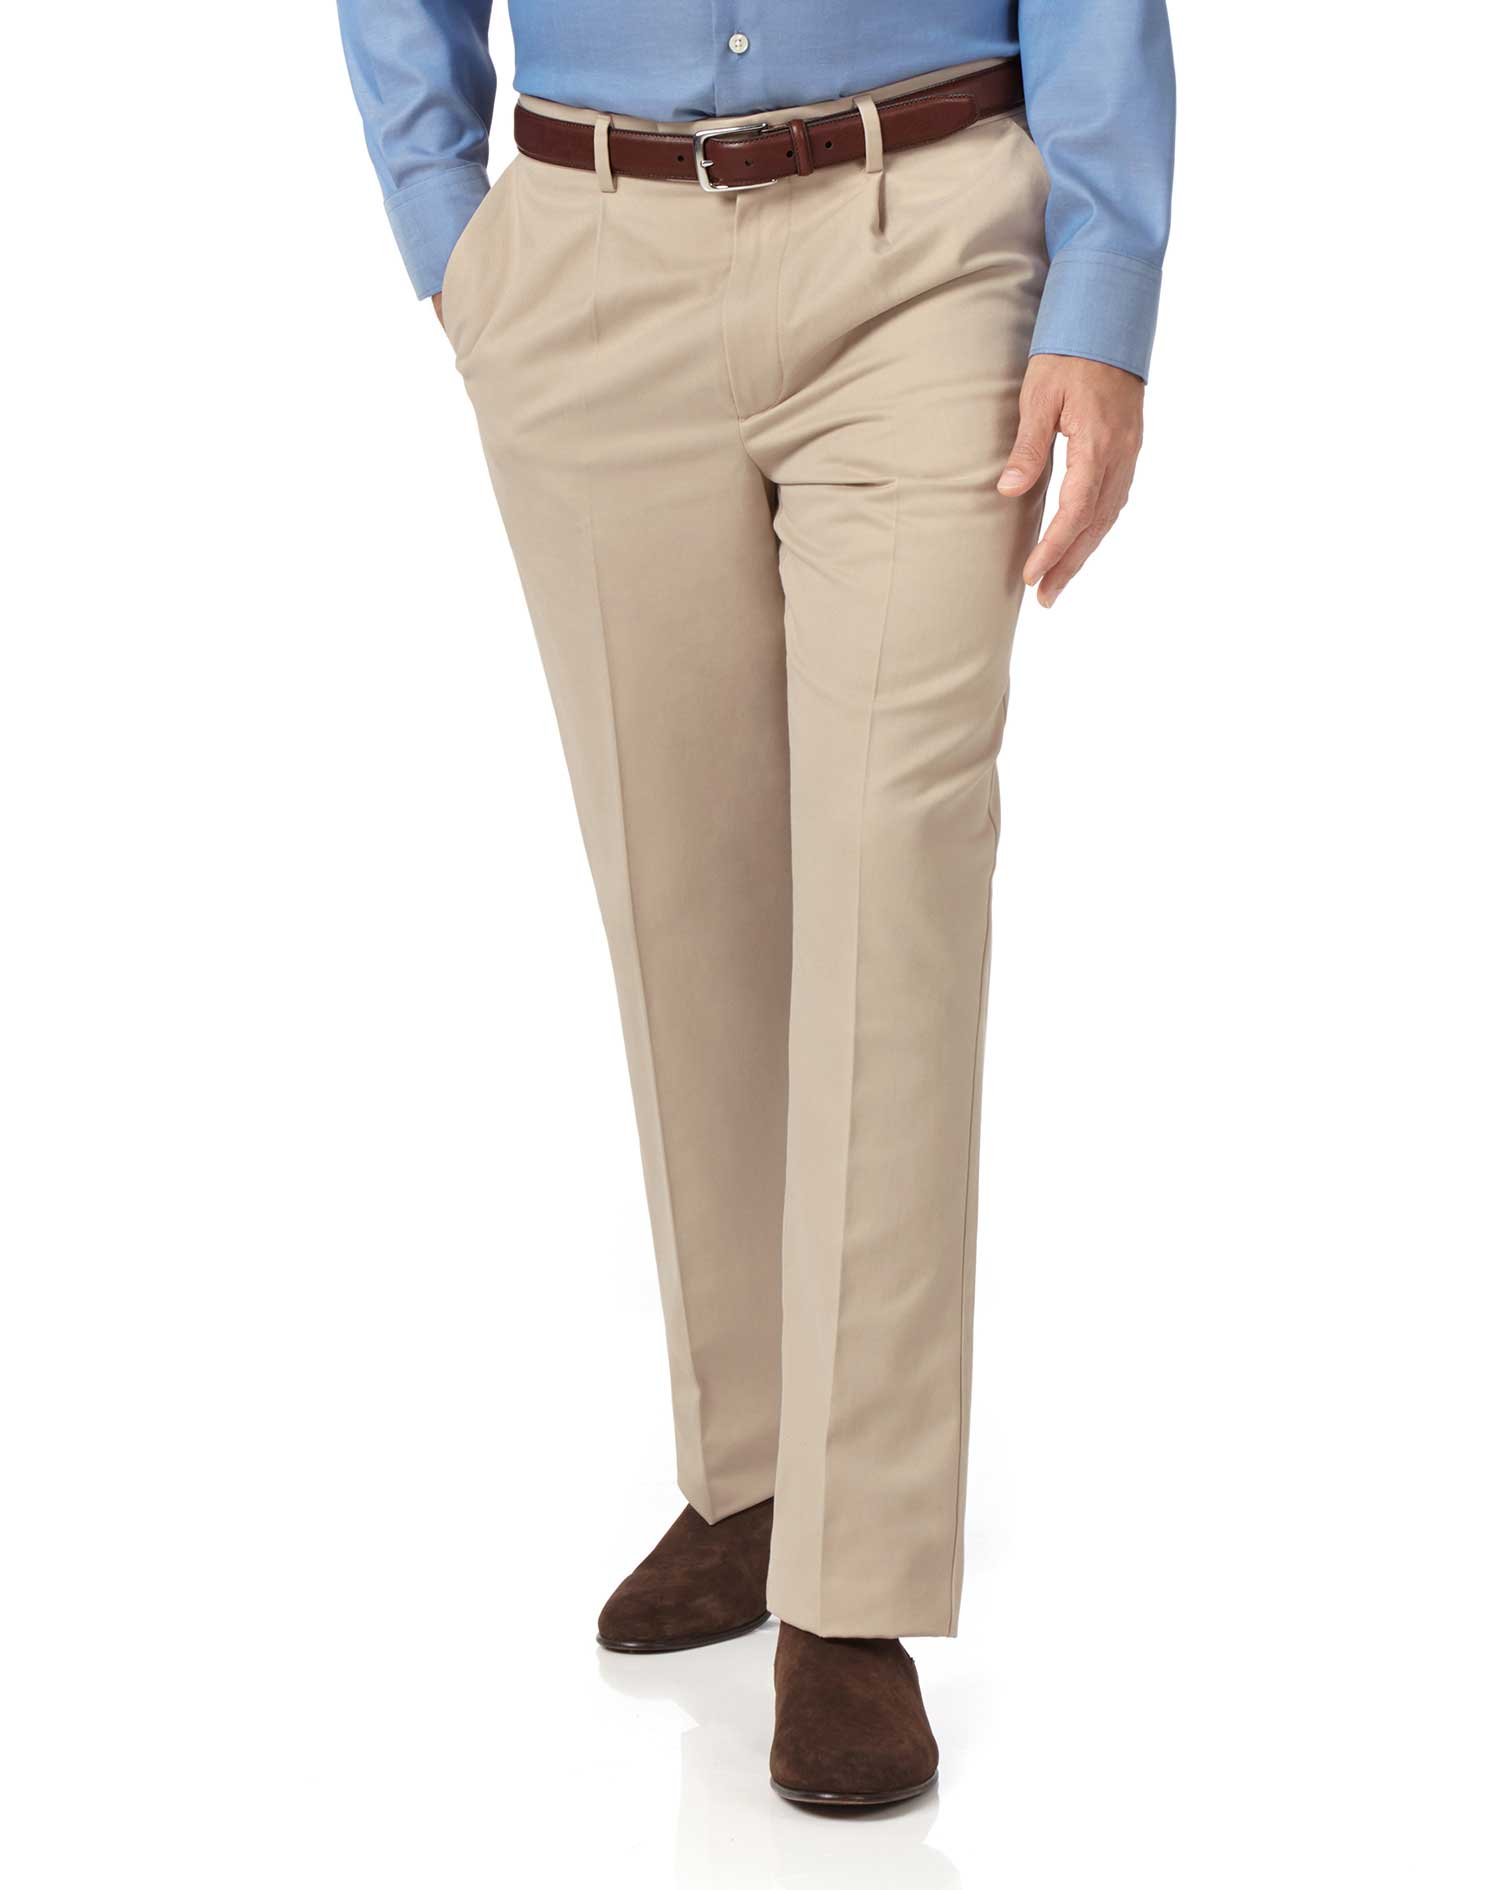 Stone Classic Fit Single Pleat Non-Iron Cotton Chino Trousers Size W36 L34 by Charles Tyrwhitt